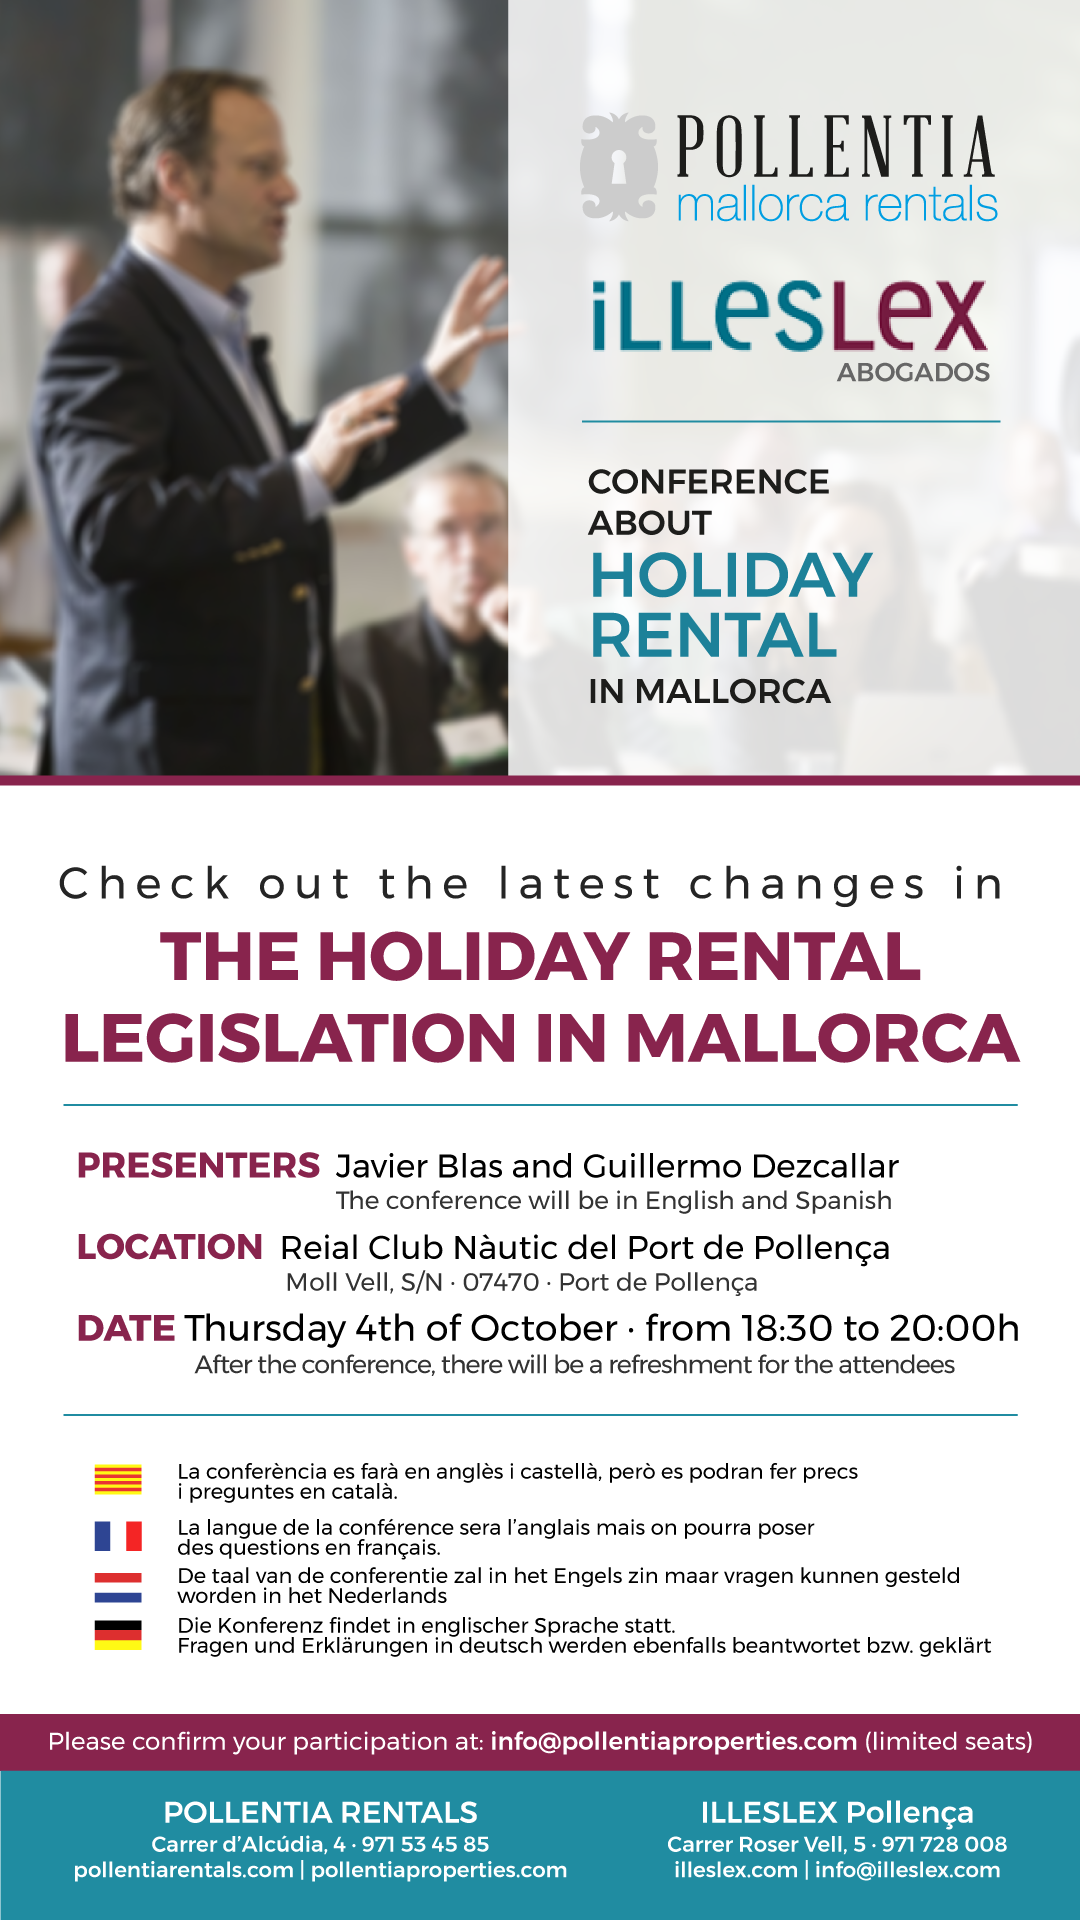 The holiday rental legislation in Mallorca | Pollentia Properties